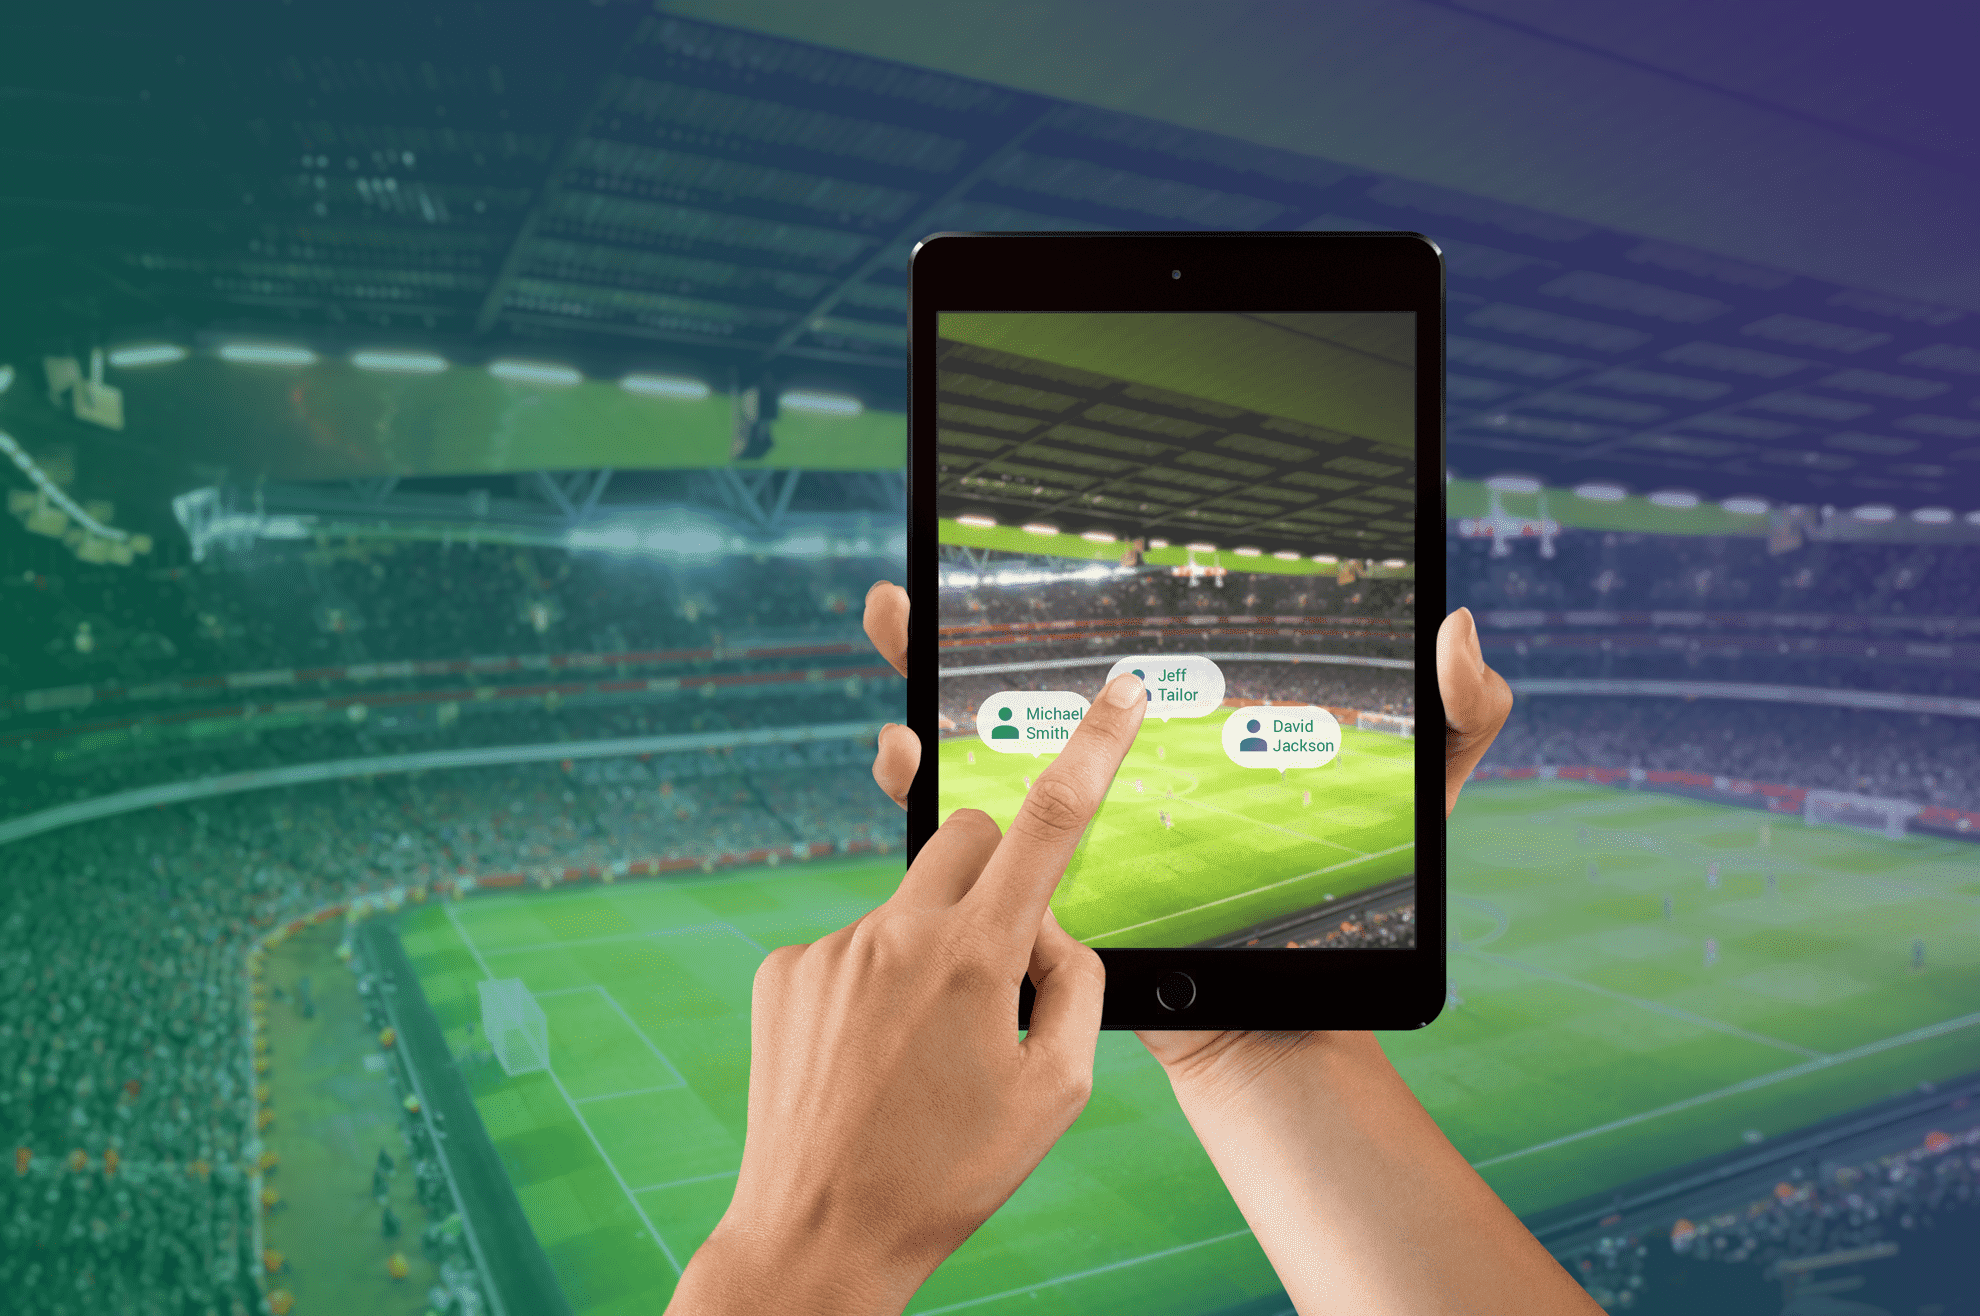 augmented reality for sport events